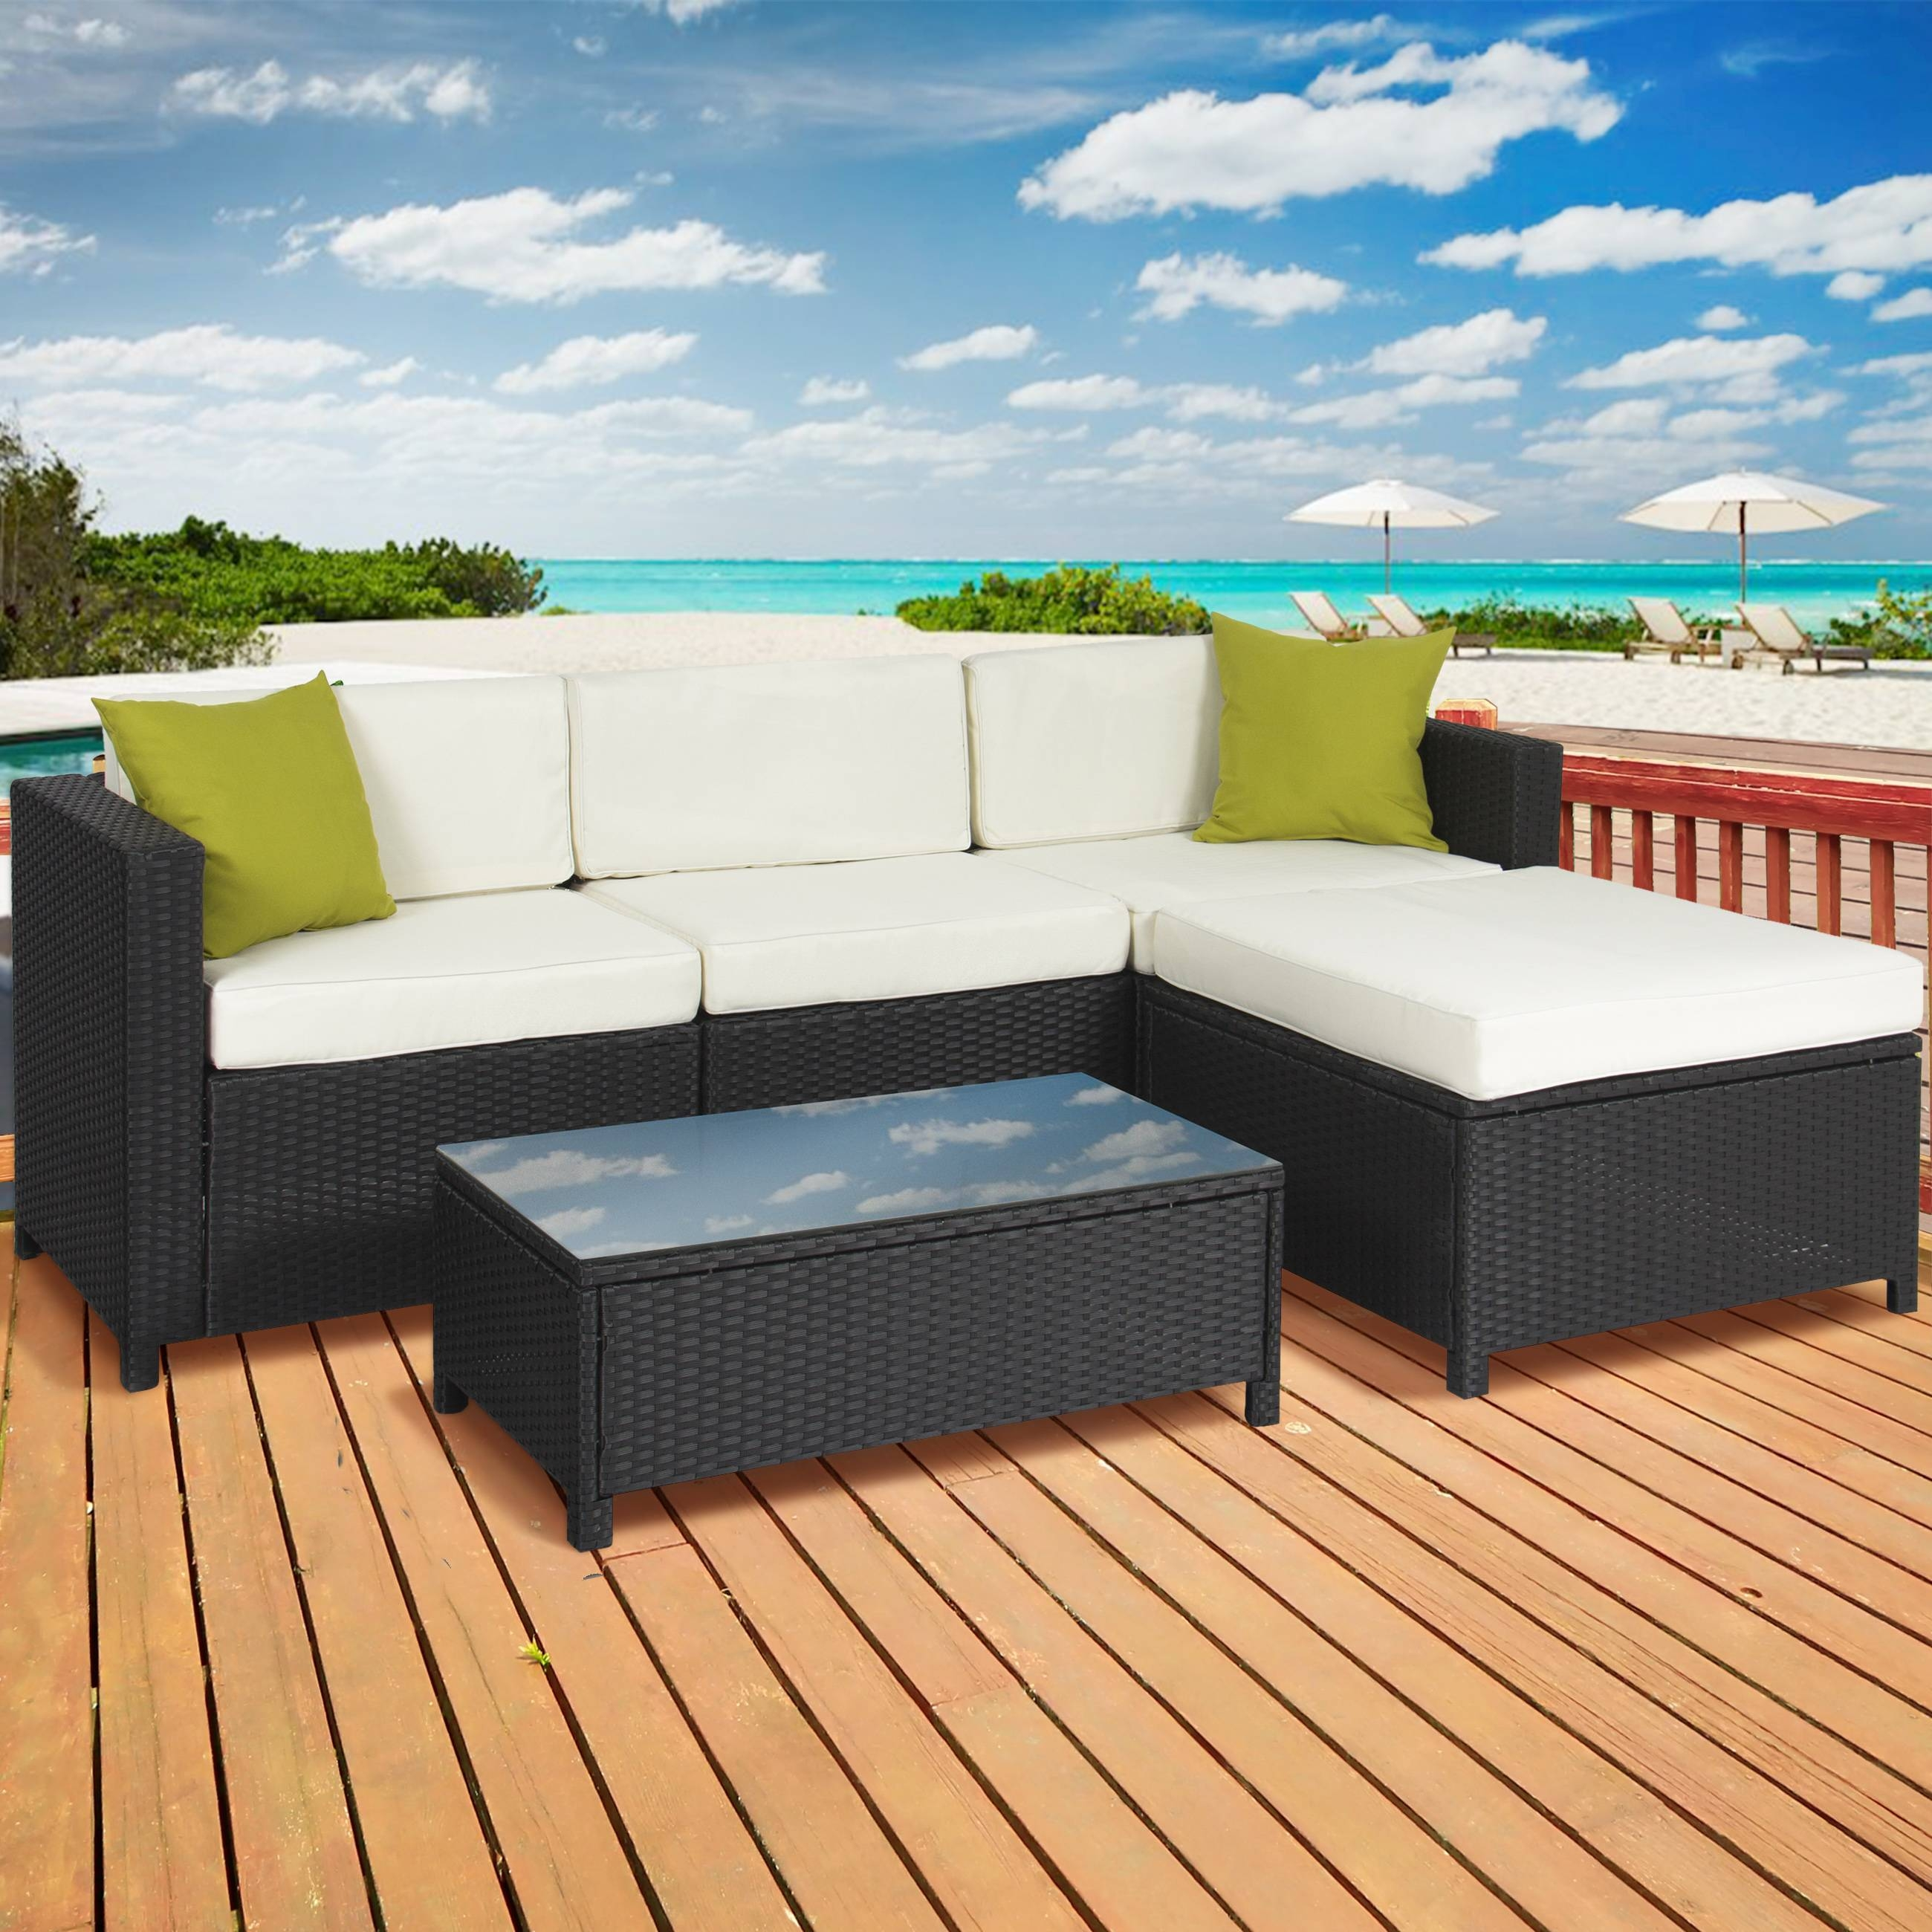 Best Choice Products 7Pc Outdoor Patio Garden Furniture Wicker for Outdoor Sofa Chairs (Image 6 of 30)